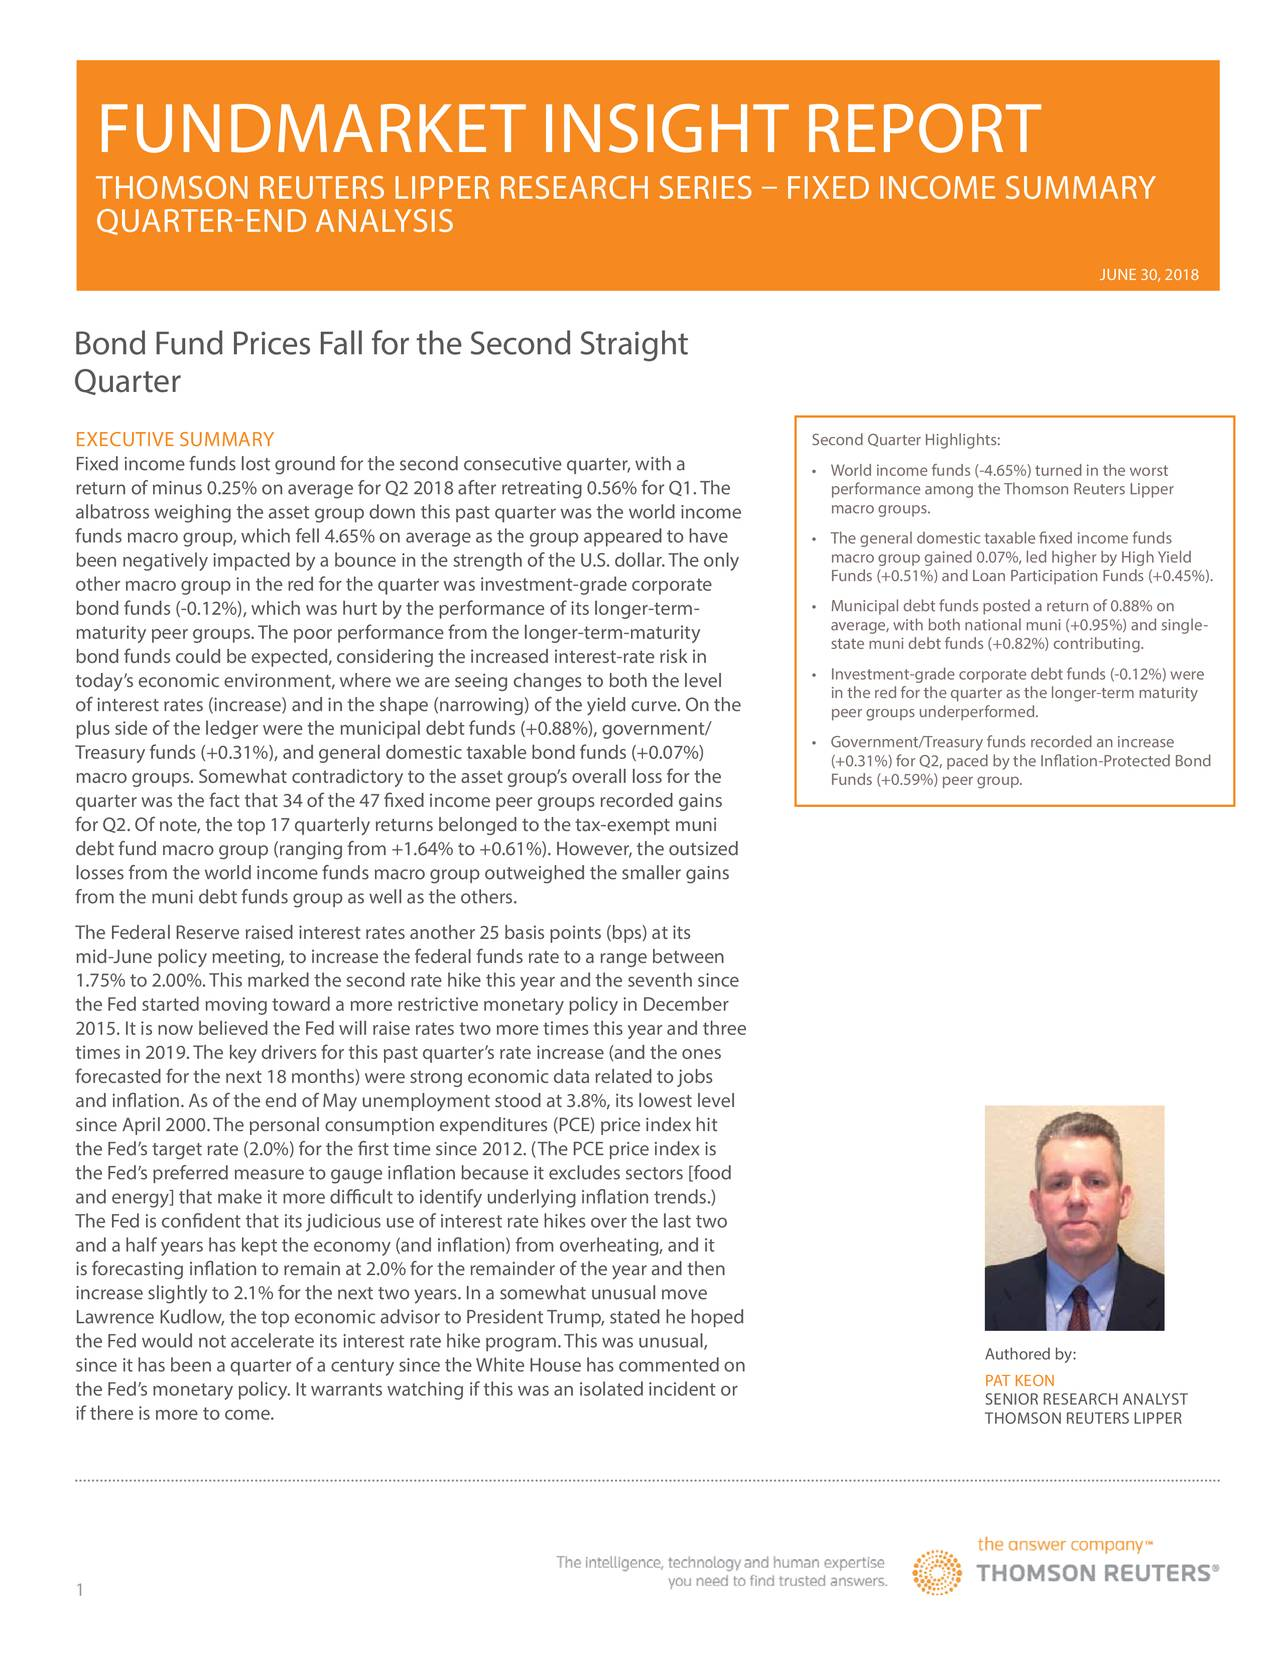 TEXT FOR HEADER THOMSON REUTERS LIPPER RESEARCH SERIES – FIXED INCOME SUMMARY TEXT FOR SUBHEADER QUARTER-END ANALYSIS JUNE 30, 2018 Bond Fund Prices Fall for the Second Straight Quarter EXECUTIVE SUMMARY Second Quarter Highlights: Fixed income funds lost ground for the second consecutive quarter, with a • World income funds (-4.65%) turned in the worst return of minus 0.25% on average for Q2 2018 after retreating 0.56% for Q1.The performance among theThomson Reuters Lipper albatross weighing the asset group down this past quarter was the world income macro groups. funds macro group, which fell 4.65% on average as the group appeared to have • macro group gained 0.07%, led higher by HighYield been negatively impacted by a bounce in the strength of the U.S. dollar.The only Funds (+0.51%) and Loan Participation Funds (+0.45%). other macro group in the red for the quarter was investment-grade corporate bond funds (-0.12%), which was hurt by the performance of its longer-term- • Municipal debt funds posted a return of 0.88% on maturity peer groups.The poor performance from the longer-term-maturity average, with both national muni (+0.95%) and single- bond funds could be expected, considering the increased interest-rate risk in state muni debt funds (+0.82%) contributing. today's economic environment, where we are seeing changes to both the level • Investment-grade corporate debt funds (-0.12%) were of interest rates (increase) and in the shape (narrowing) of the yield curve. On the the red for the quarter as the longer-term maturity peer groups underperformed. plus side of the ledger were the municipal debt funds (+0.88%), government/ • Government/Treasury funds recorded an increase Treasury funds (+0.31%), and general domestic taxable bond funds (+0.07%) (+0.31%) for Q2, paced by the Inflation-ProtectedBond macro groups. Somewhat contradictory to the asset group's overall loss for the Funds (+0.59%) peer group. quarter was the fact that 34 of the 47 fixed income peer gro